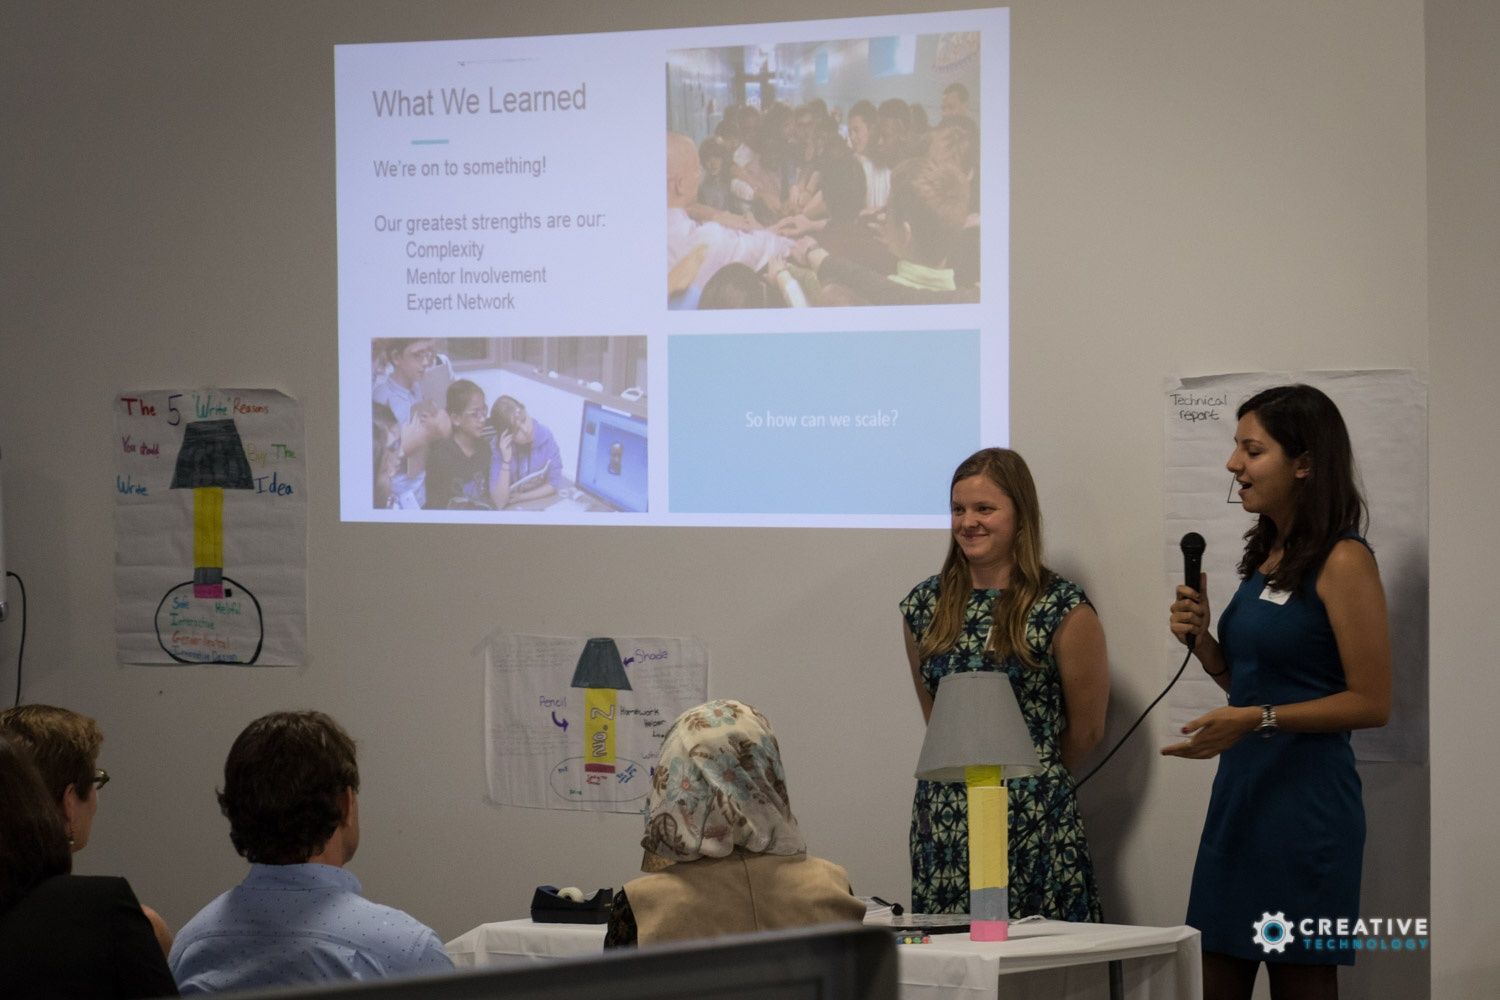 SparkShop Shares Vision with Educators, Politicians and Manufacturing Associations at Pioneer Service